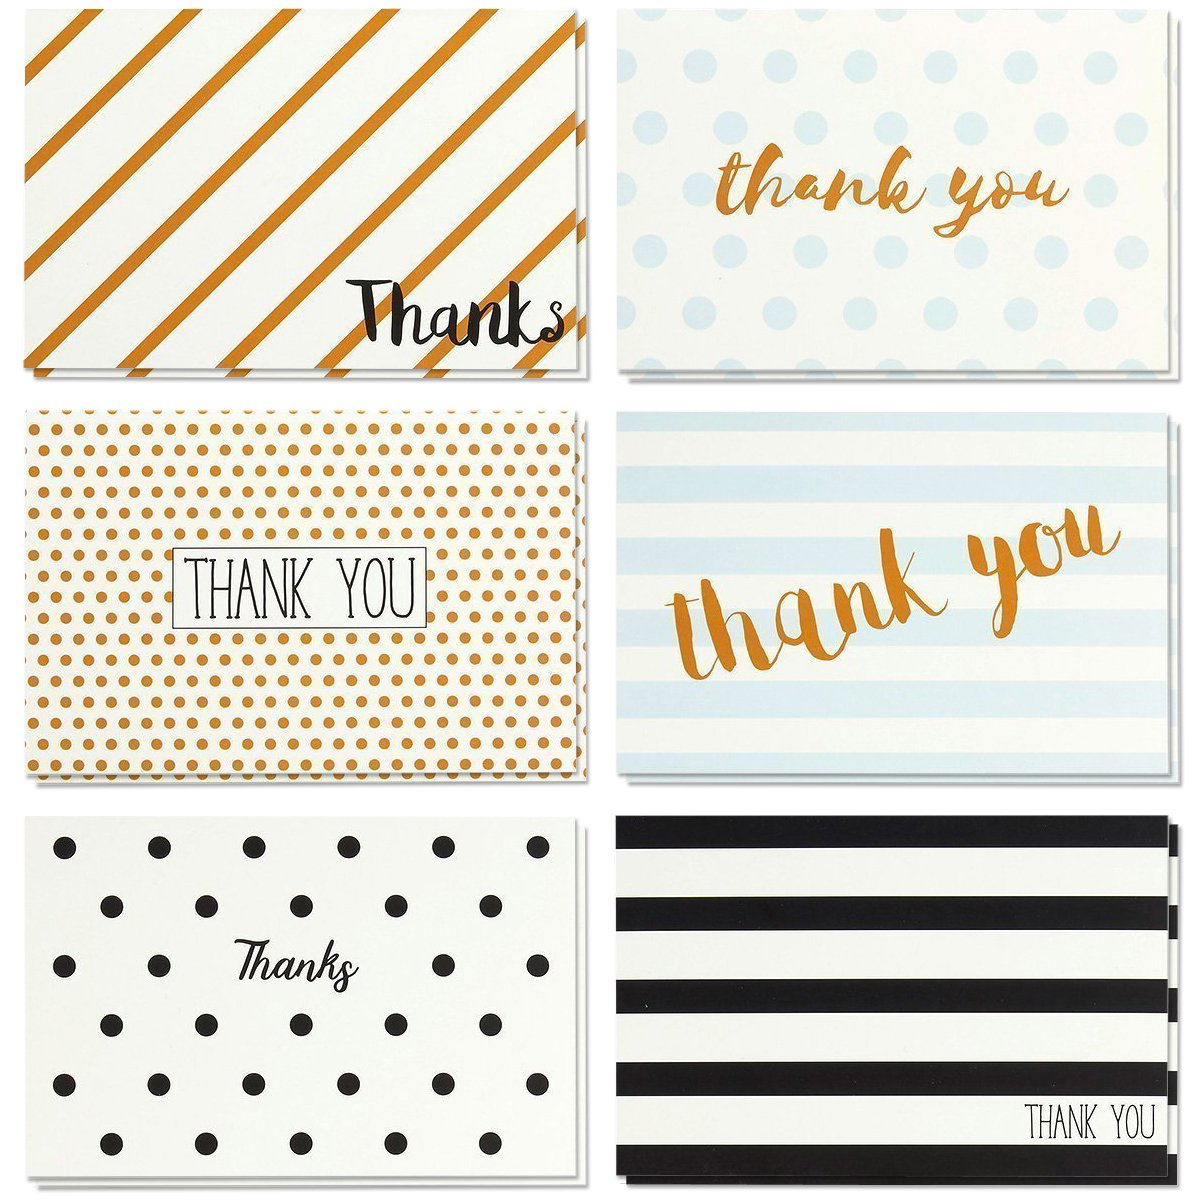 Amazon 48 thank you cards retro 4x6 greeting cards blank amazon 48 thank you cards retro 4x6 greeting cards blank inside bulk boxed set with white envelopes office products kristyandbryce Image collections